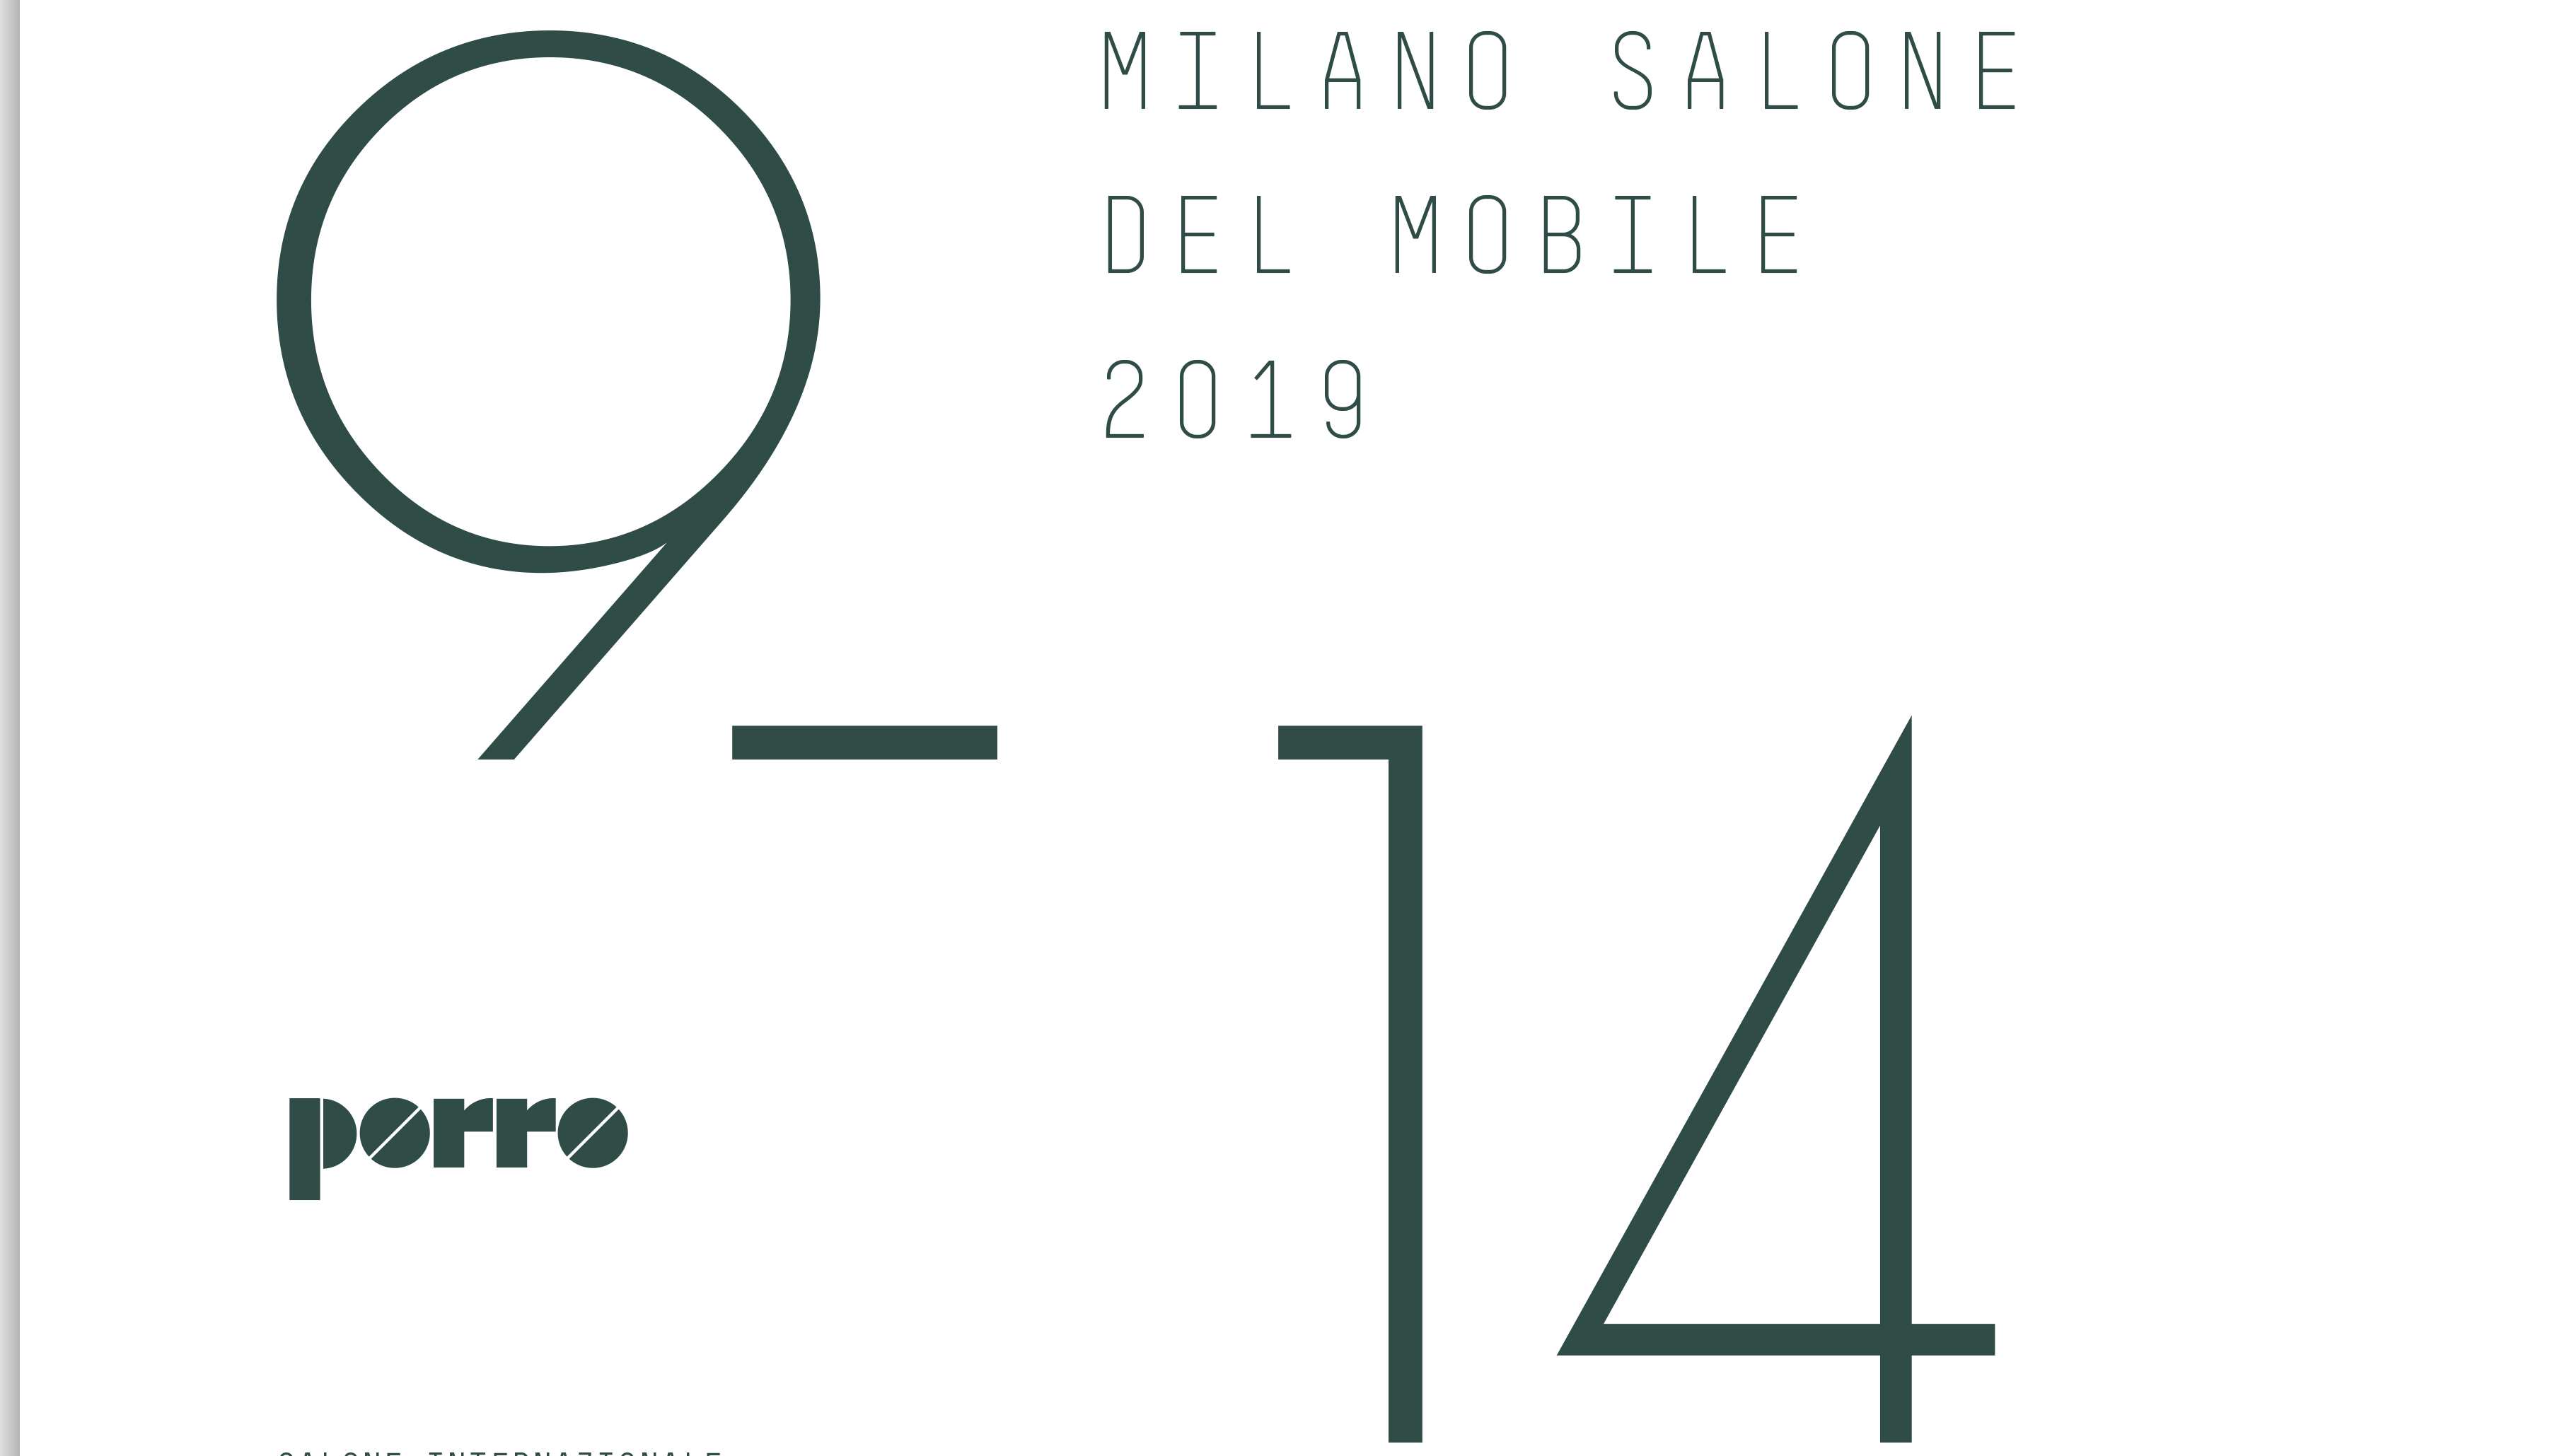 Porro - PORRO - INVITATION OF SALONE DEL MOBILE 2019